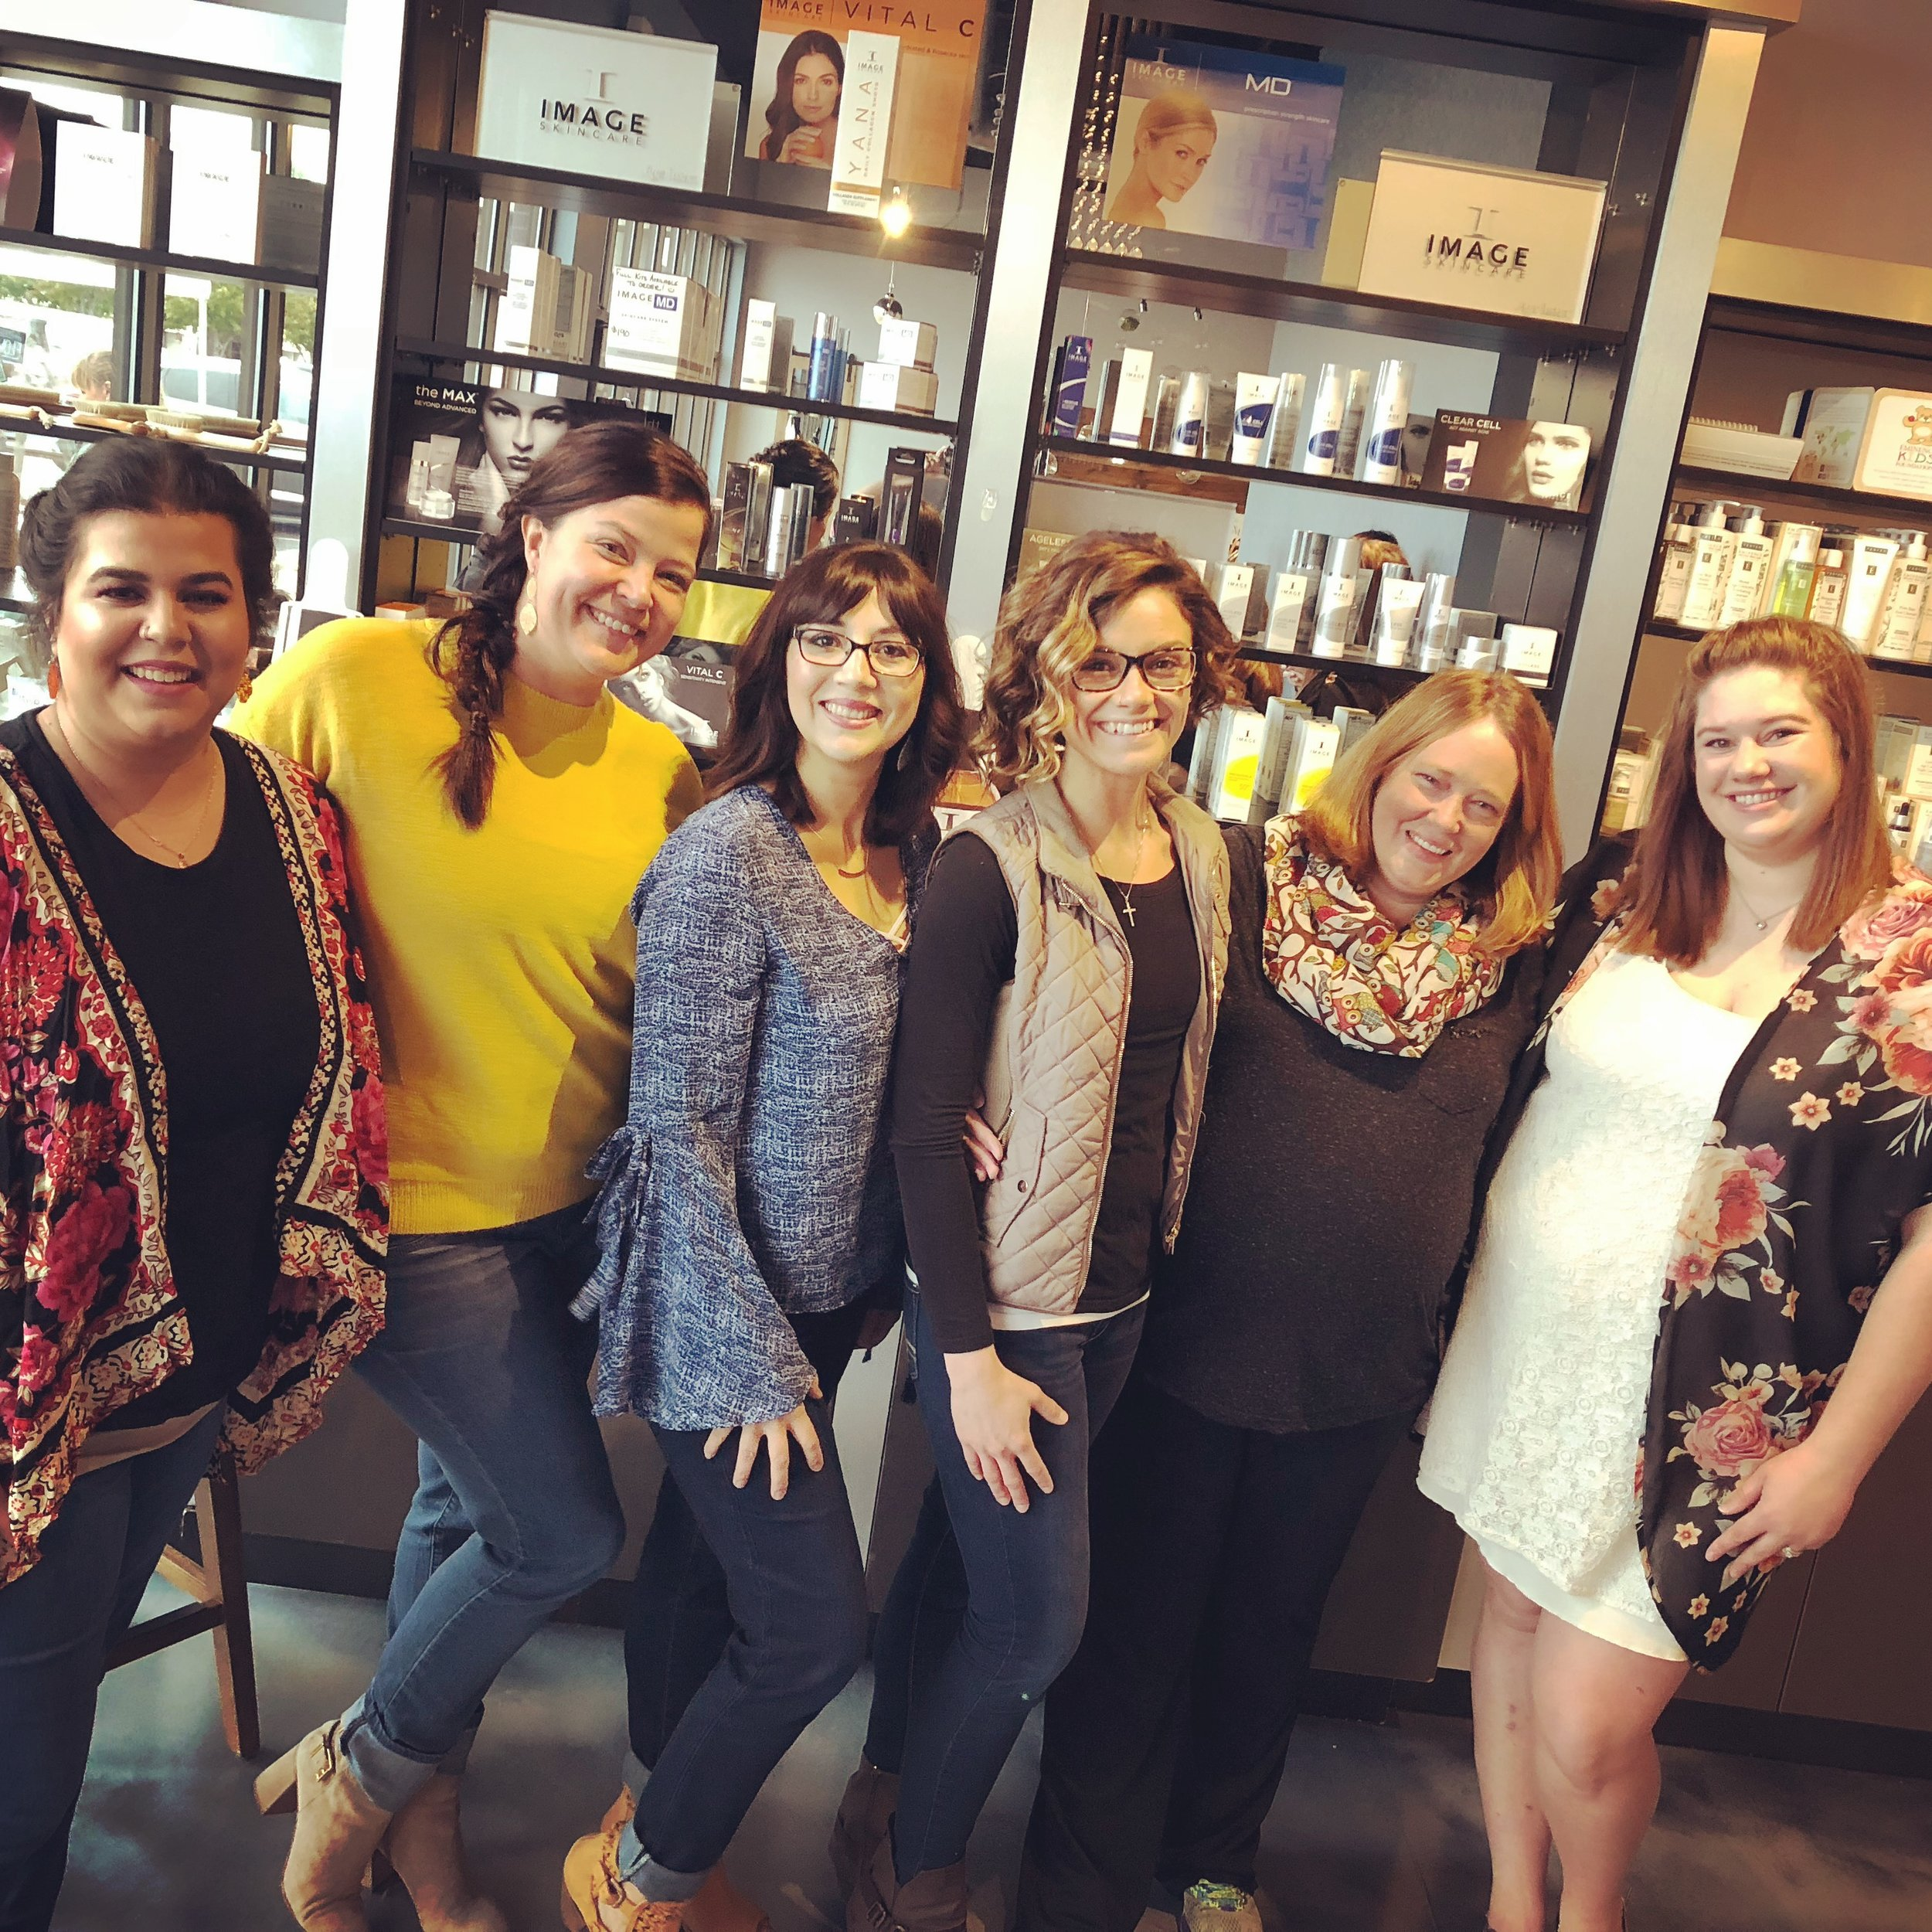 Veronica - Makeup  Ashley-Slender Body Wraps, Spray Tanning and Paramedical Tattooing  Kelie- Facials, Dermaplaning, Chemical Peels, Waxing, & Lash Lift  Sabrina- Massage  Ryana- Massage, Facials & Makeup  Karleigh- Facials, Dermaplaning, Chemical Peels, Waxing, & Lash Extensions